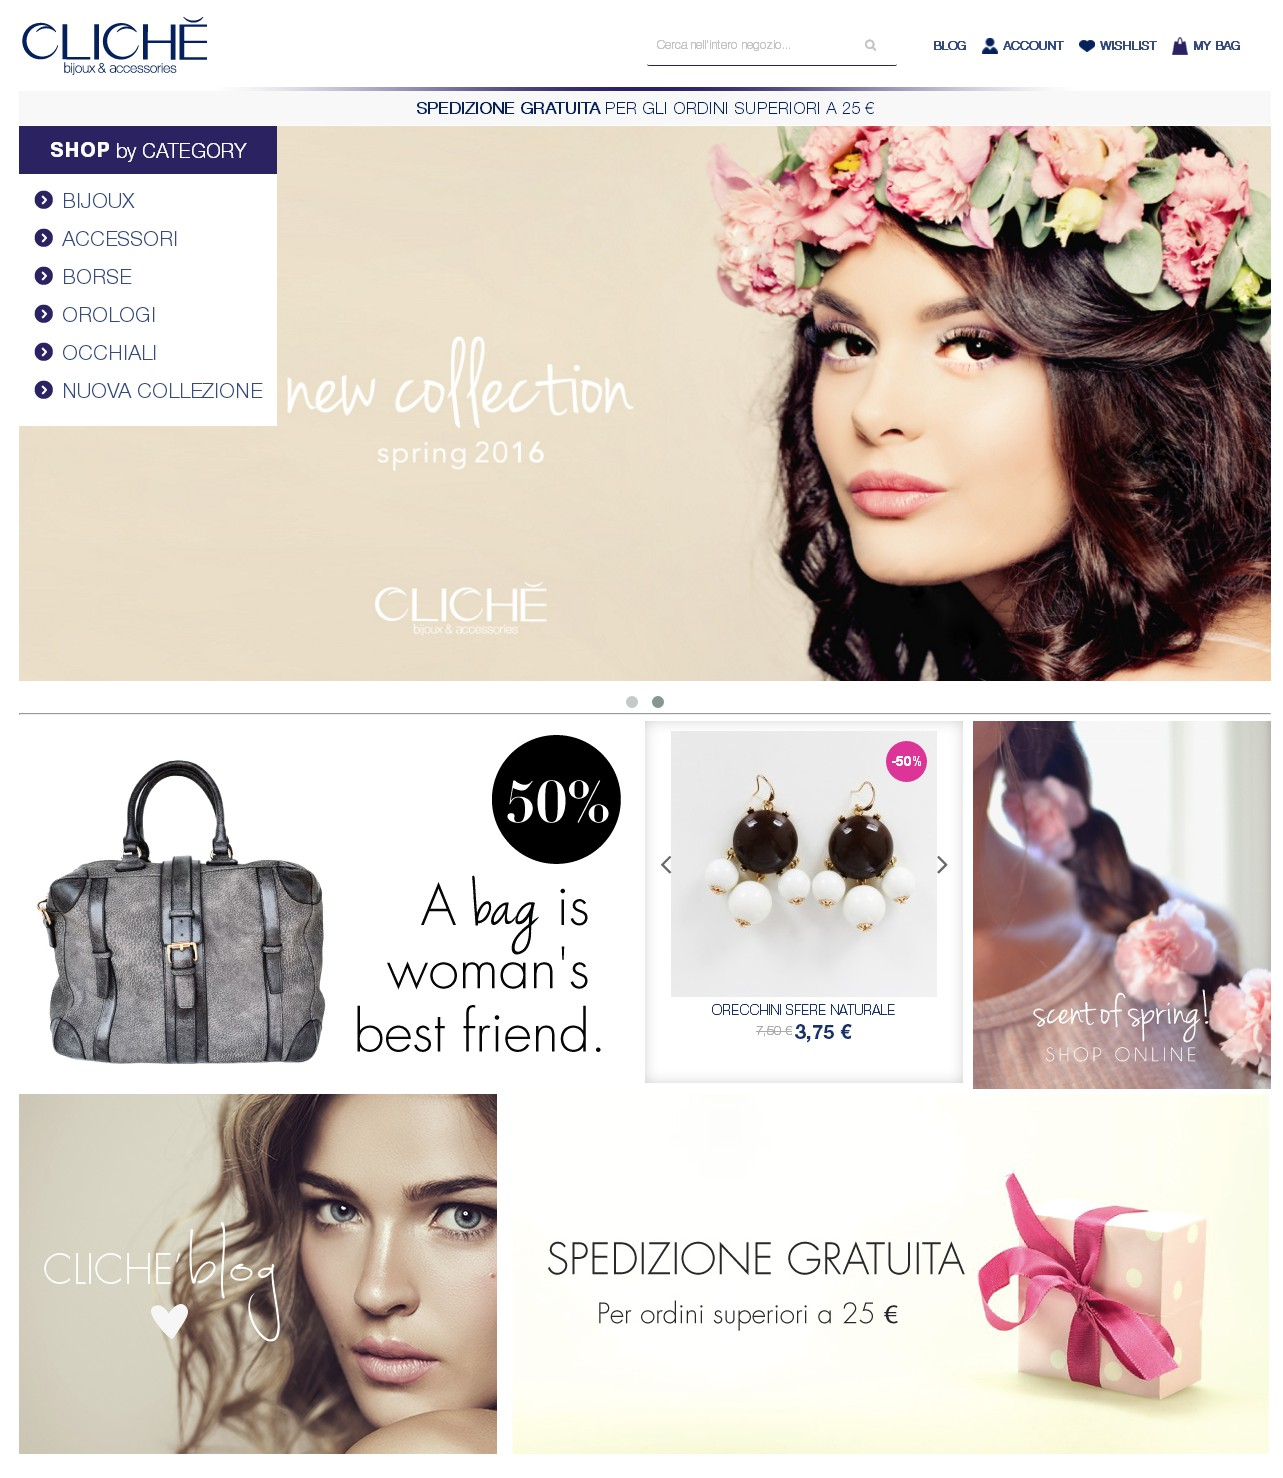 clicheshoponline.it, un e- commerce di successo